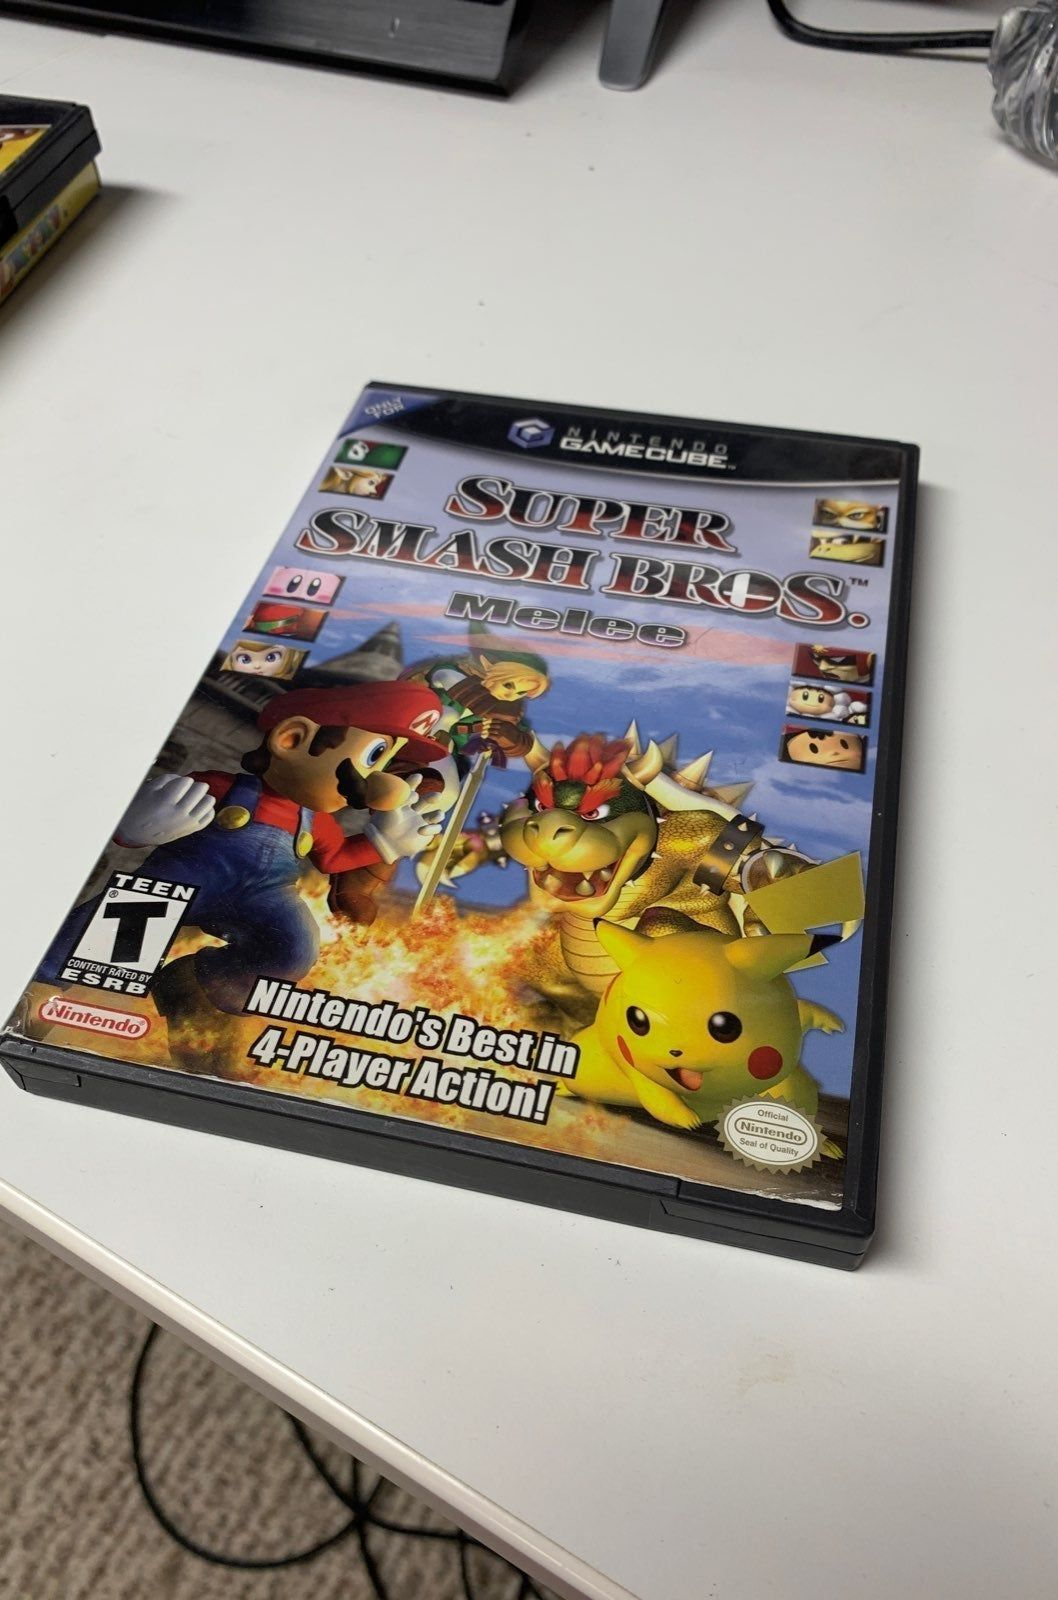 Ssb Melee For Gamecube Highly Used Shipped With Care No Instruction Booklet Included Gamecube Super Smash Bros Melee Nintendo Gamecube Games